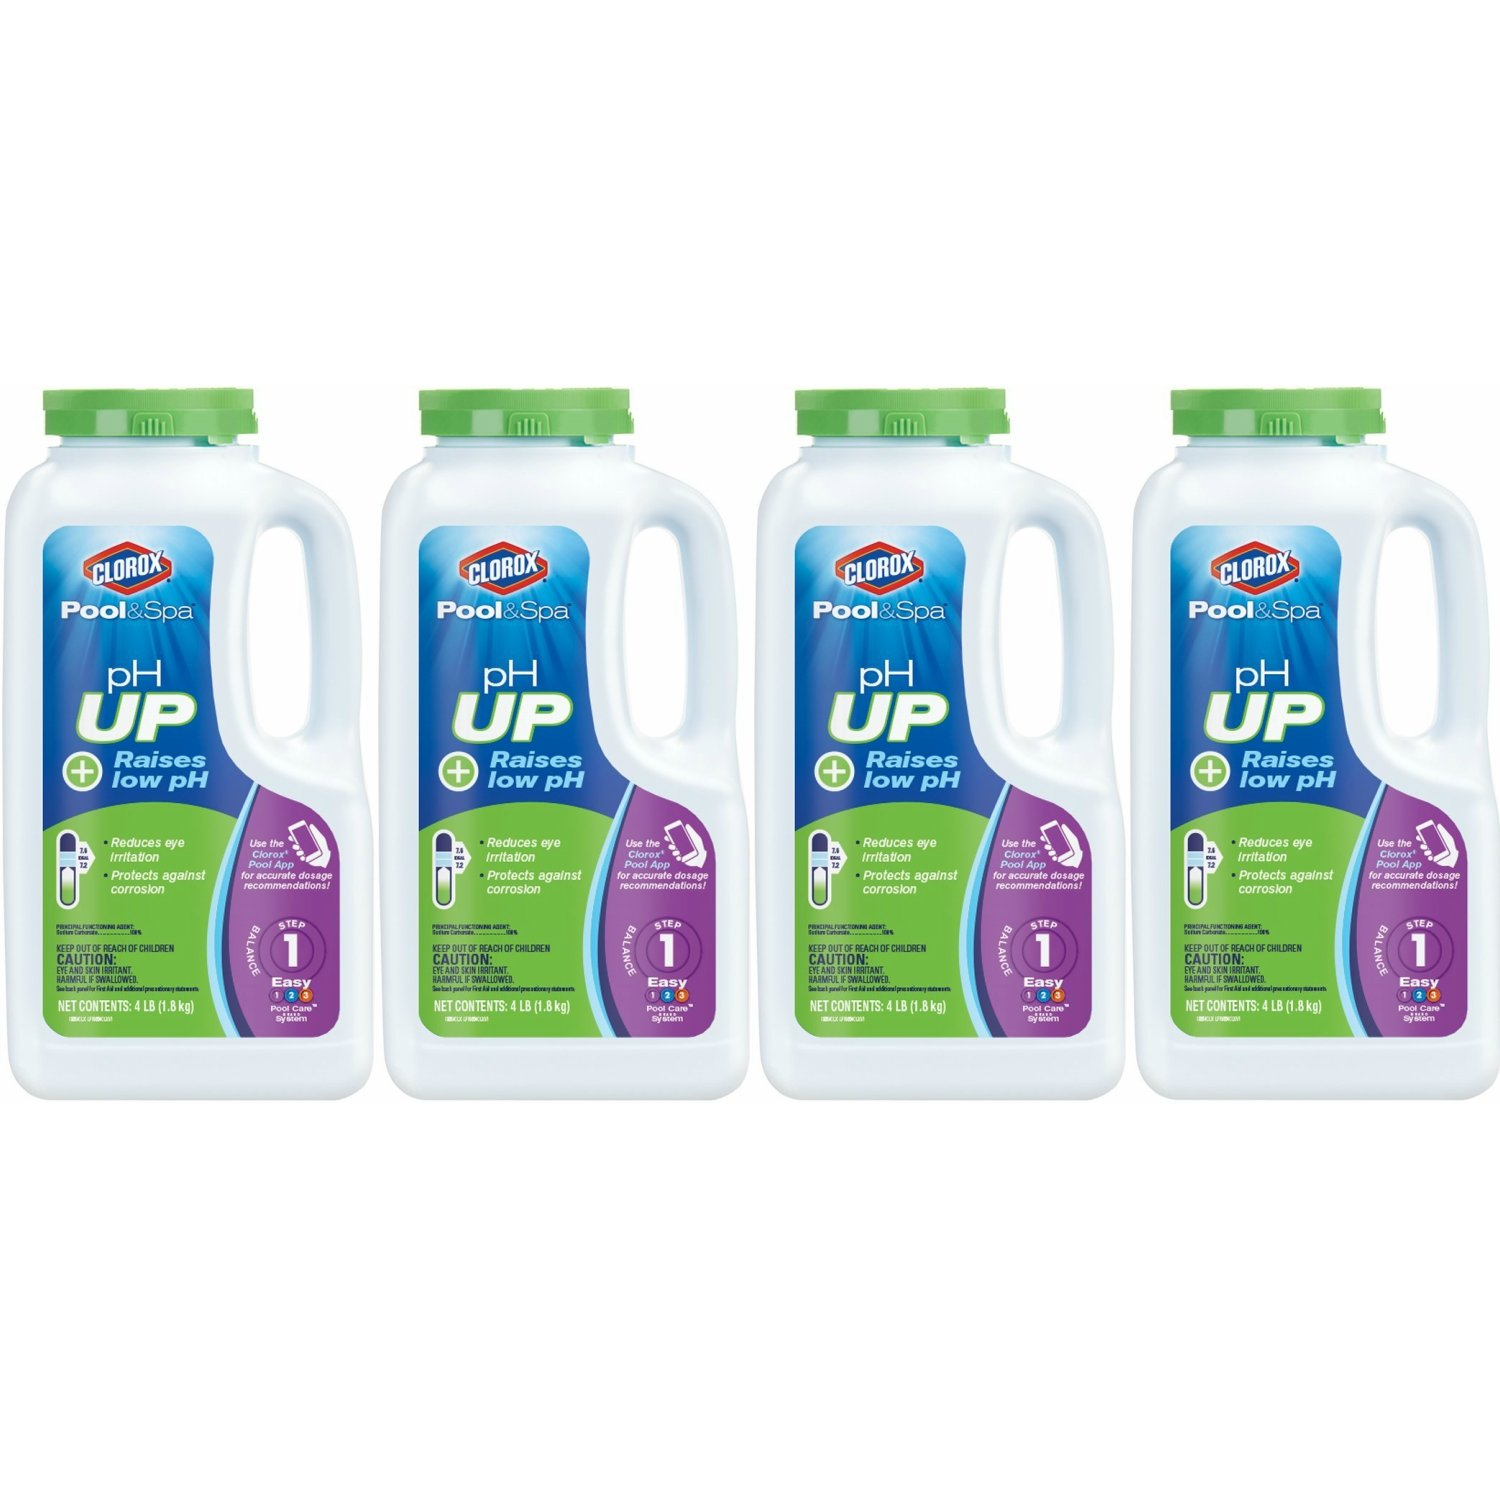 Clorox Pool&Spa pH Up, 4-Pound 19004CLX, Pack of 4